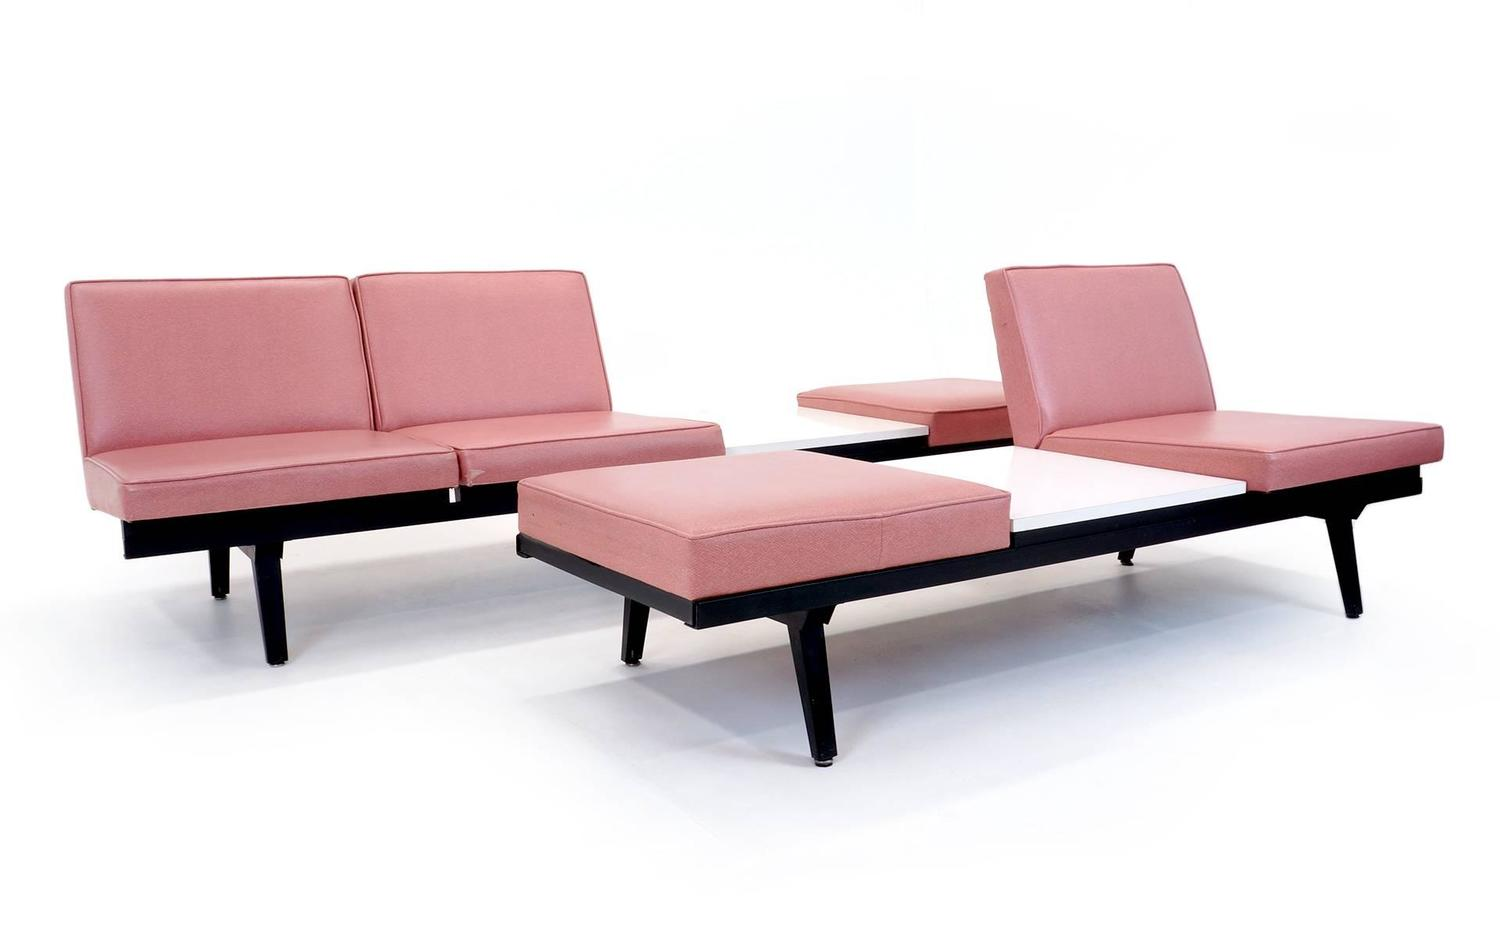 Pair of george nelson for herman miller steel frame sofas modular seating at 1stdibs Steel frame sofa